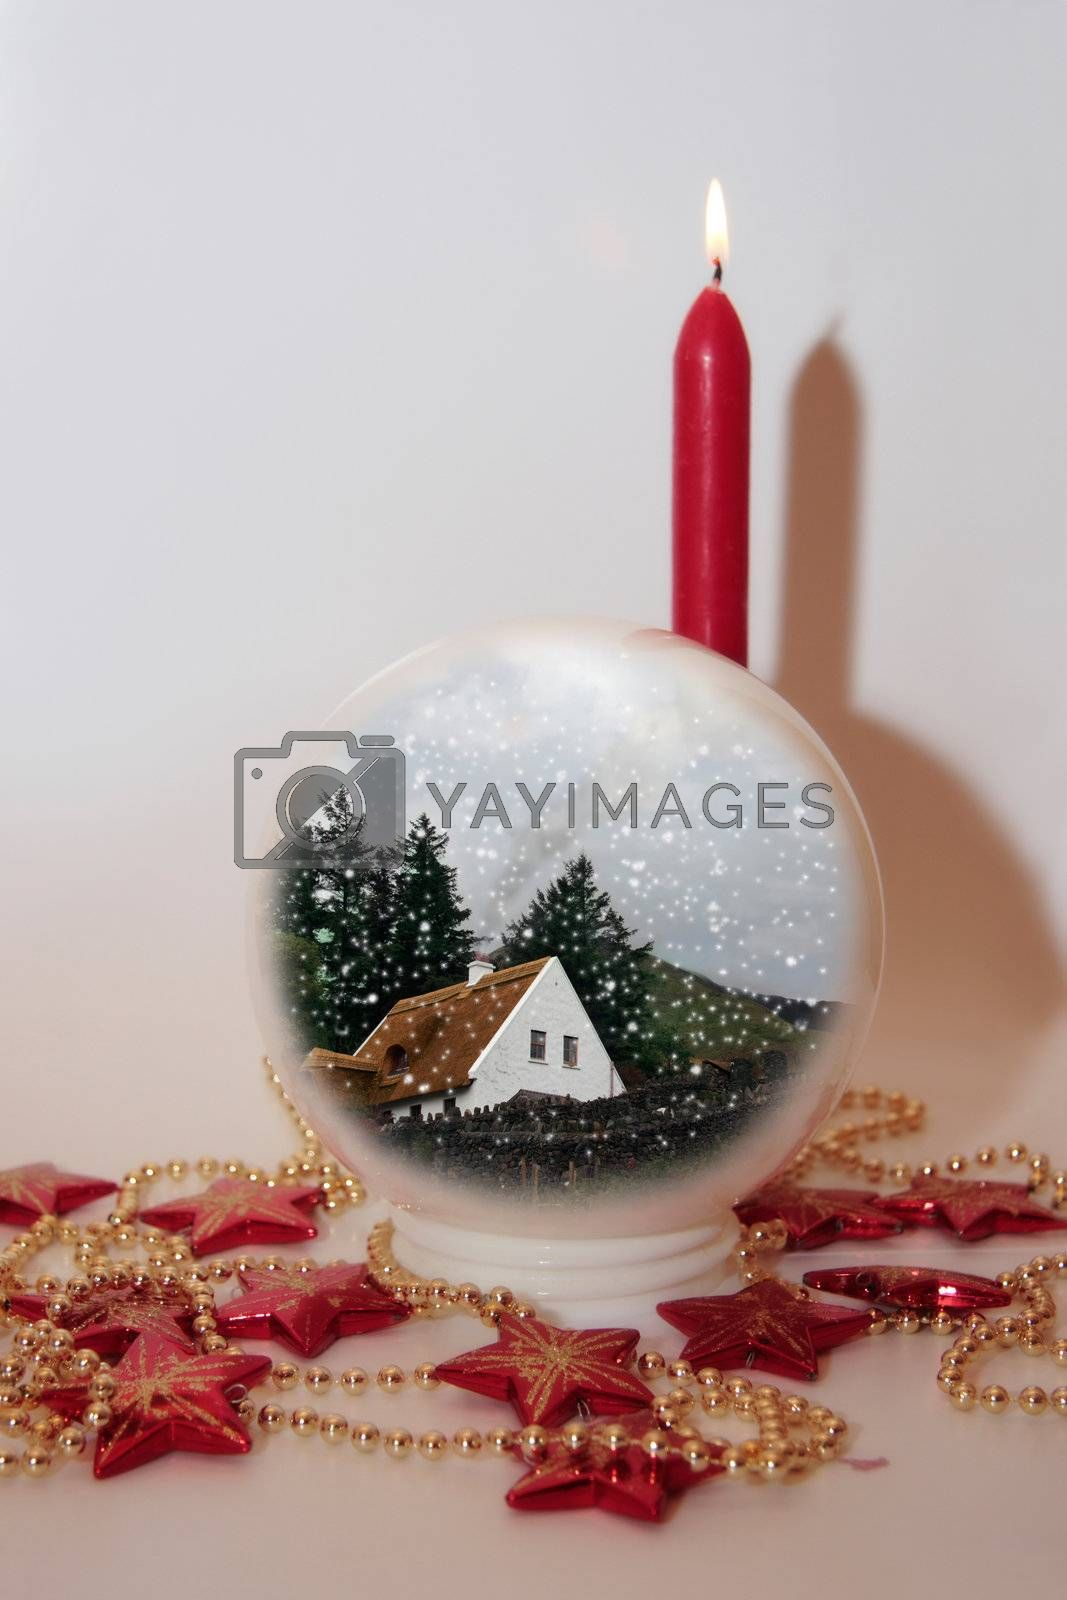 christmas crystal ball against a snowing background with candles